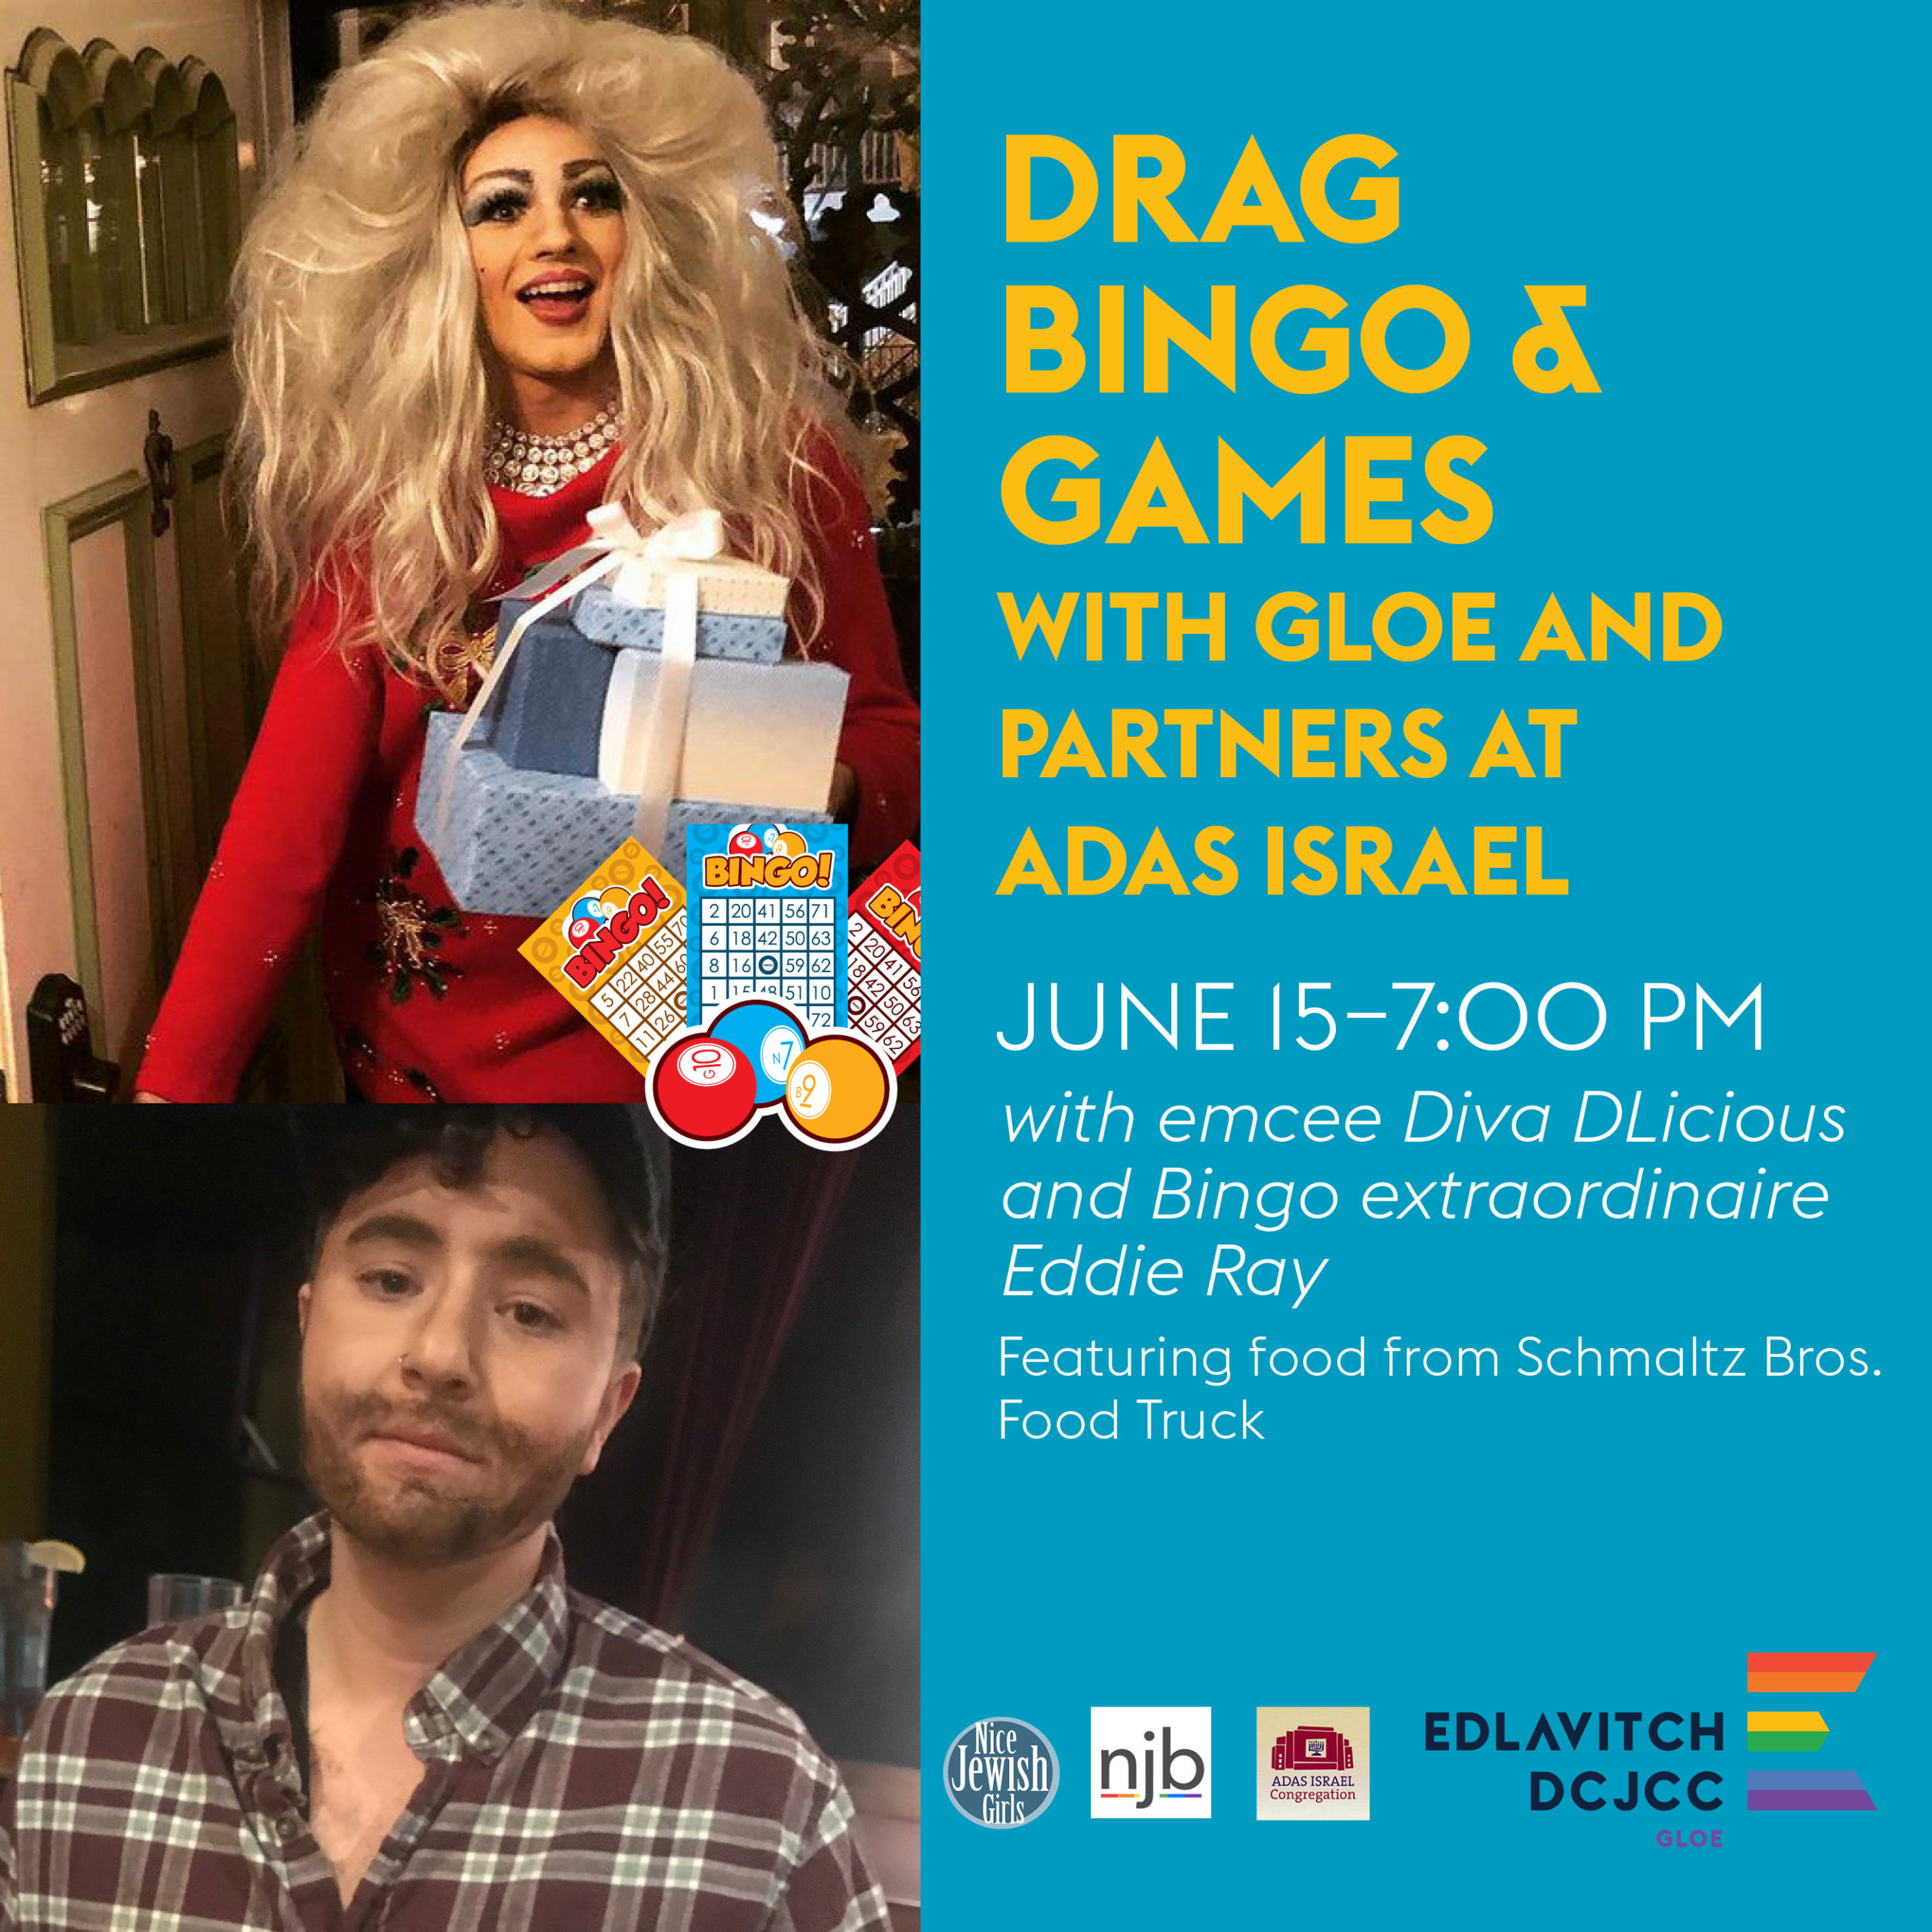 Image is of a drag queen and drag king. Text next to their pictures reads: Drag Bingo & Games with GLOE and partners at Adas Israel